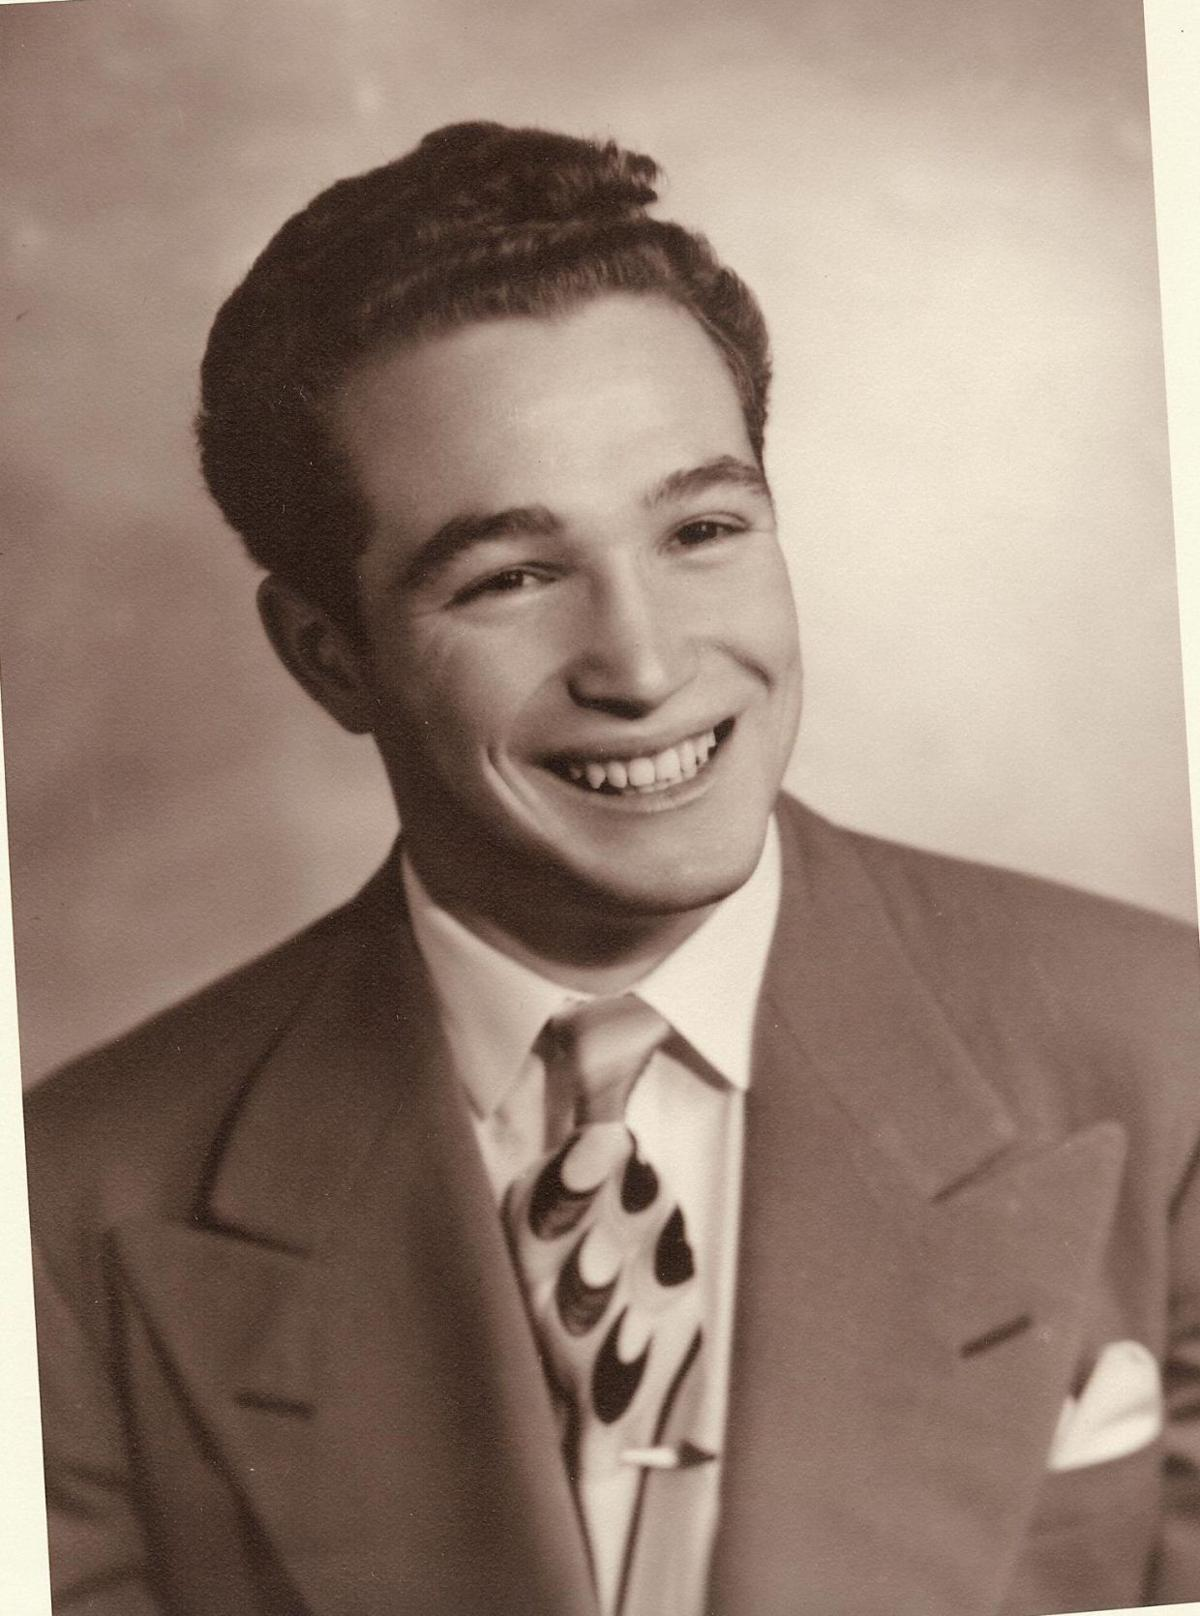 Milt Younger at age 18